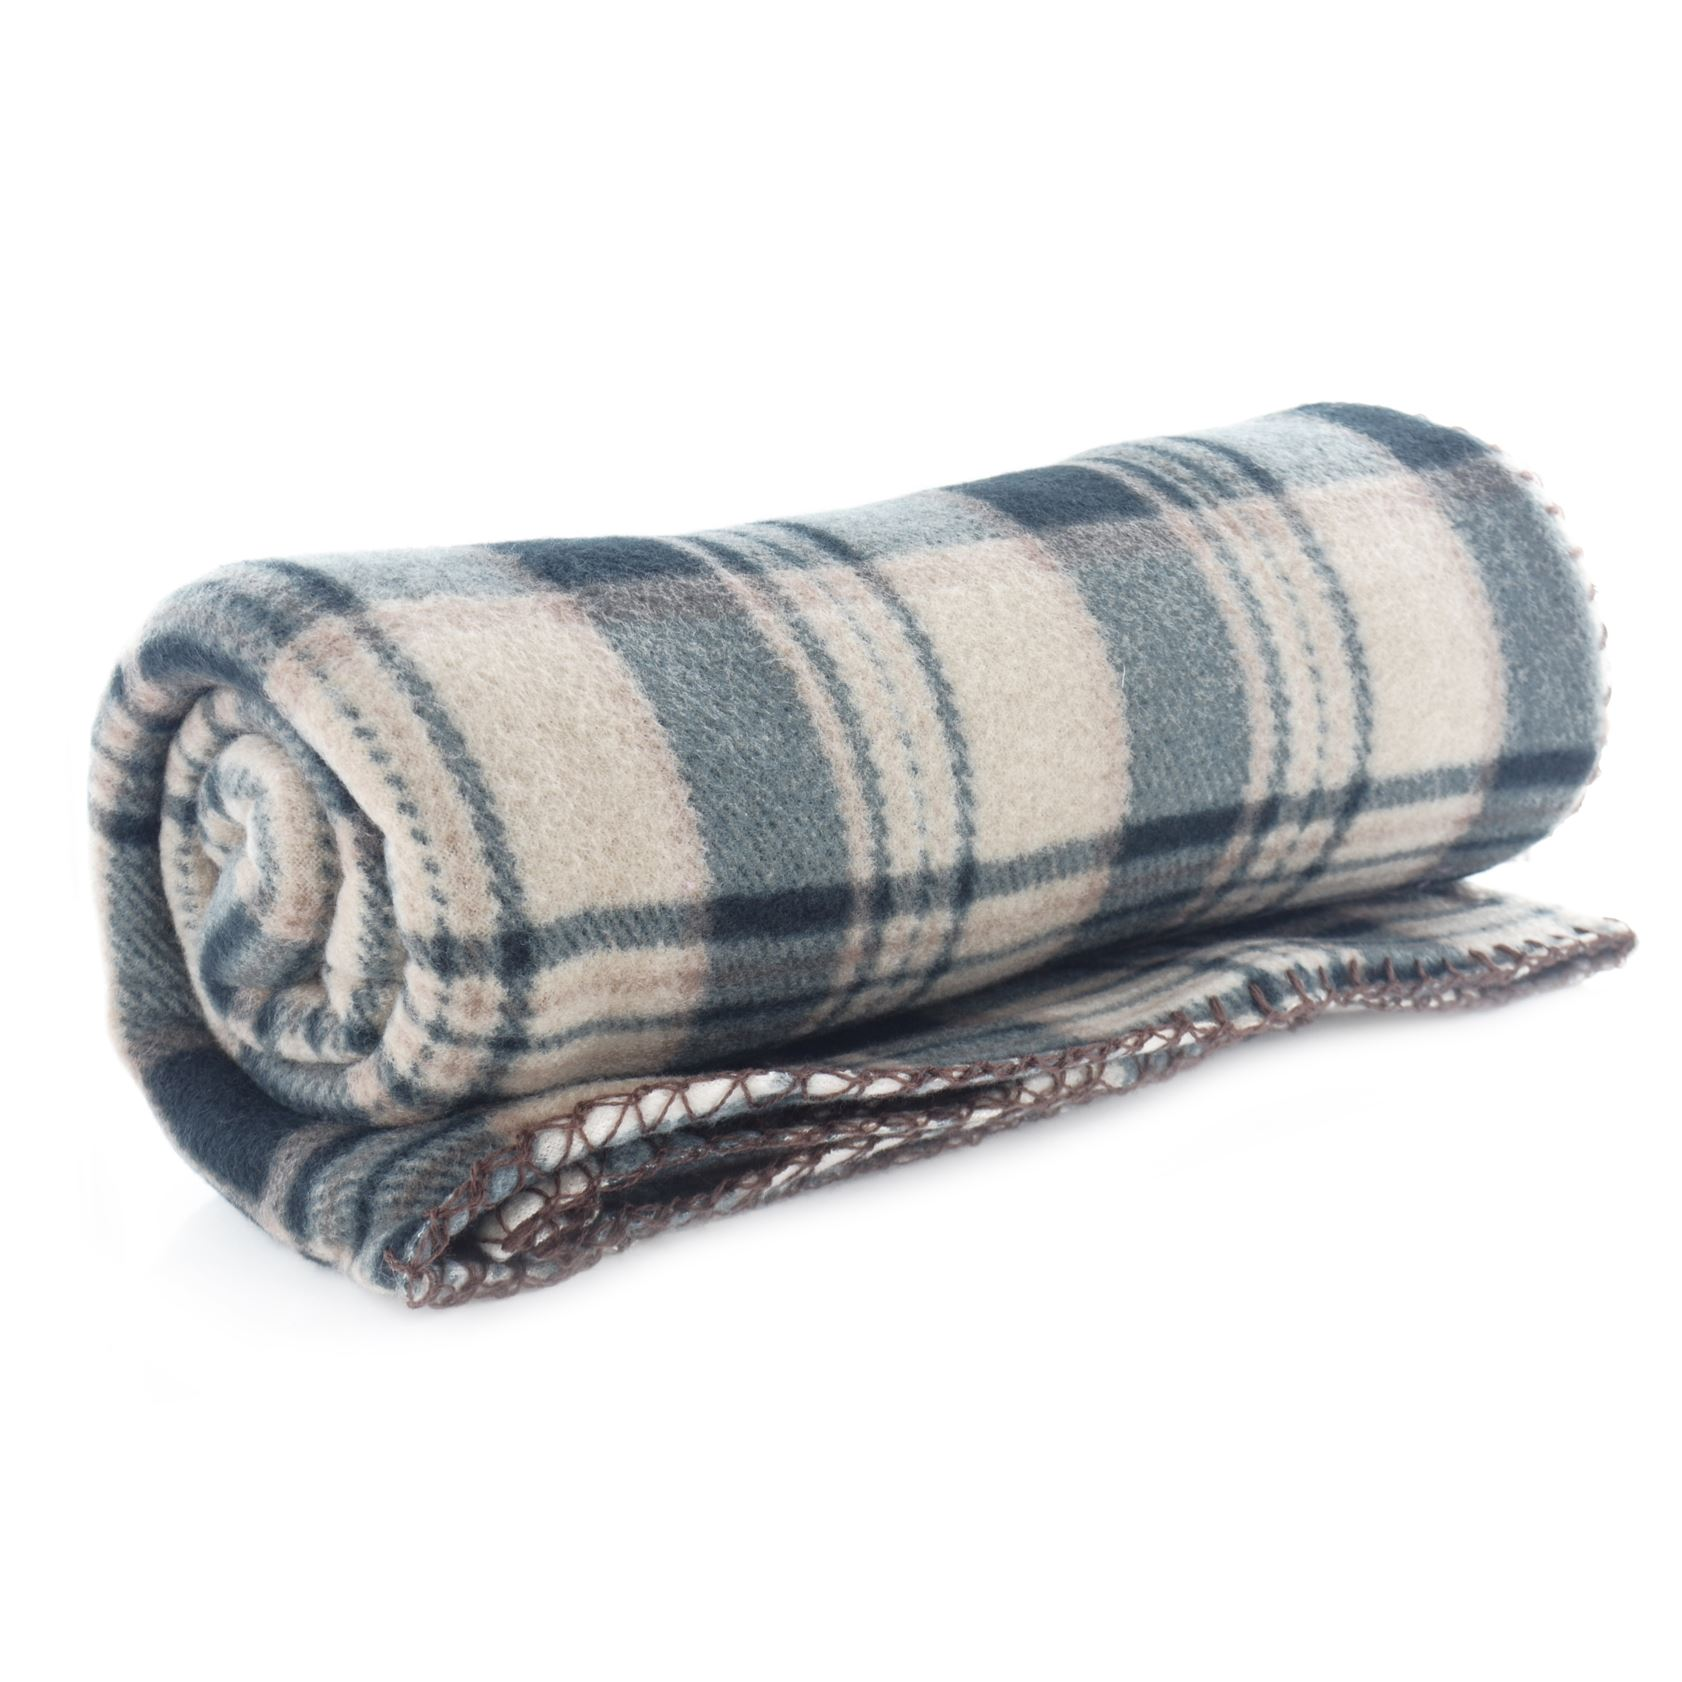 New-Luxury-Soft-Fleece-Blanket-Warm-Bed-Sofa-Throw-Polar-Travel-120-x-150cm